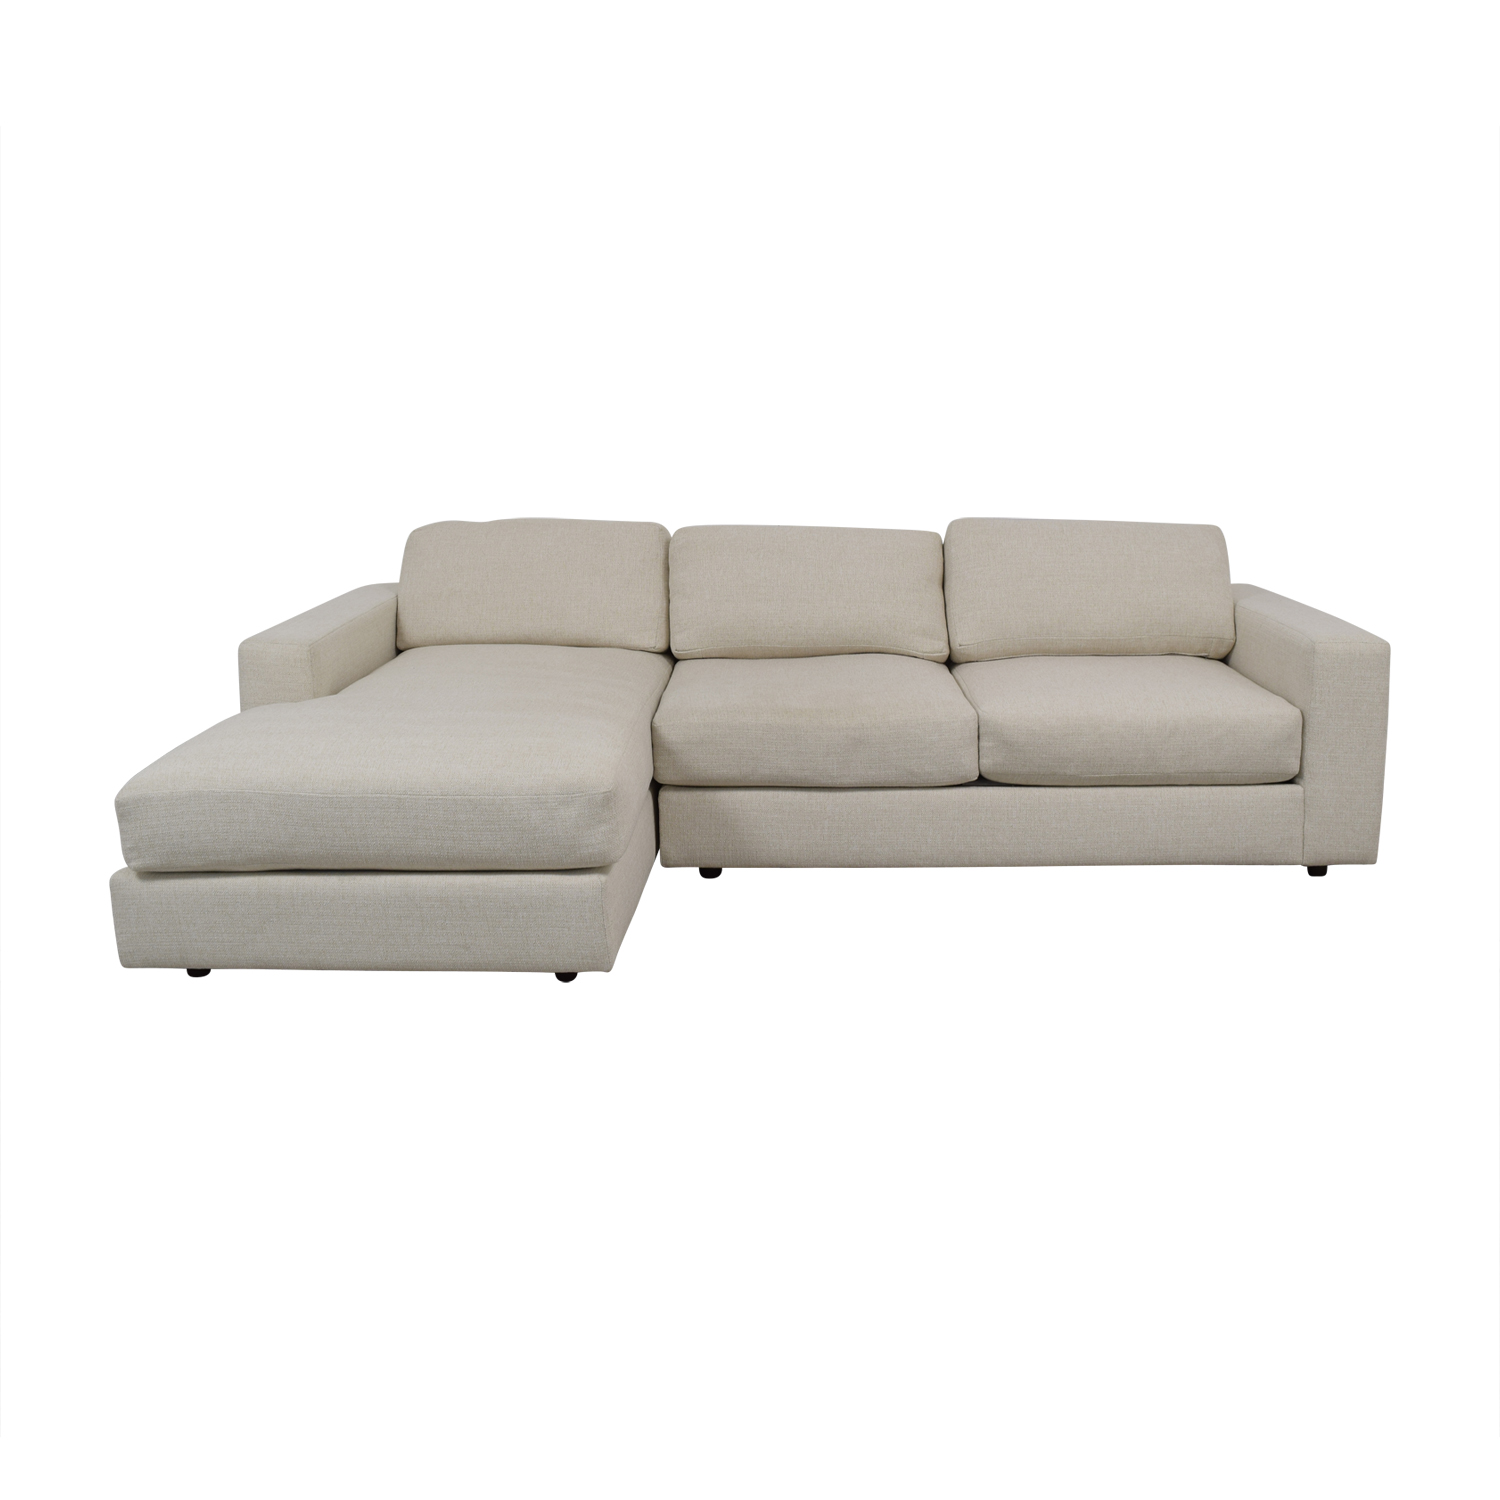 Awe Inspiring 48 Off West Elm West Elm Urban White Chaise Sectional Sofas Pabps2019 Chair Design Images Pabps2019Com